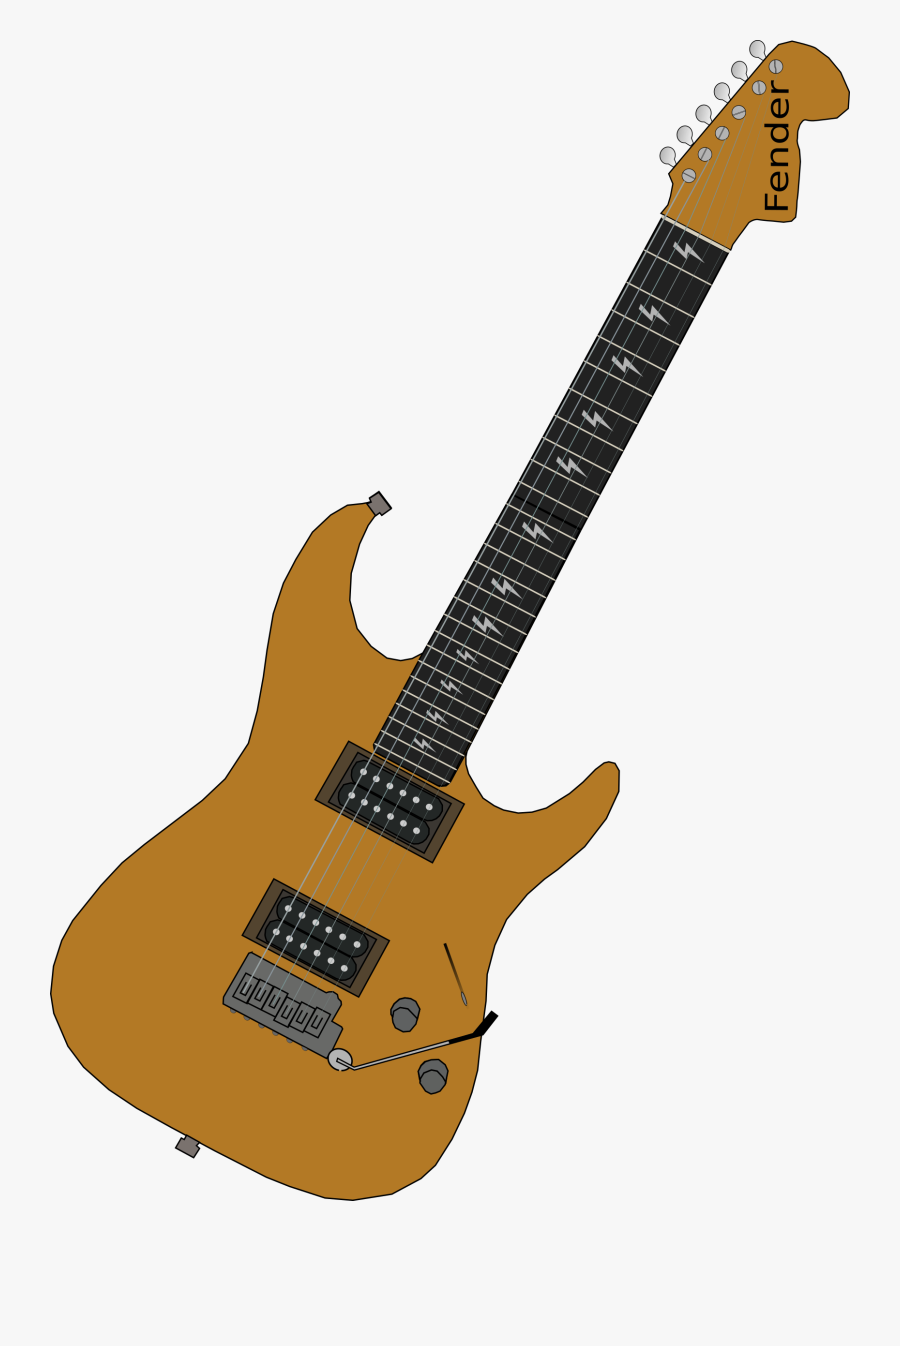 Acoustic Electric Guitar,string Instrument,guitar Accessory - Clipart Of Electric Guitar, Transparent Clipart